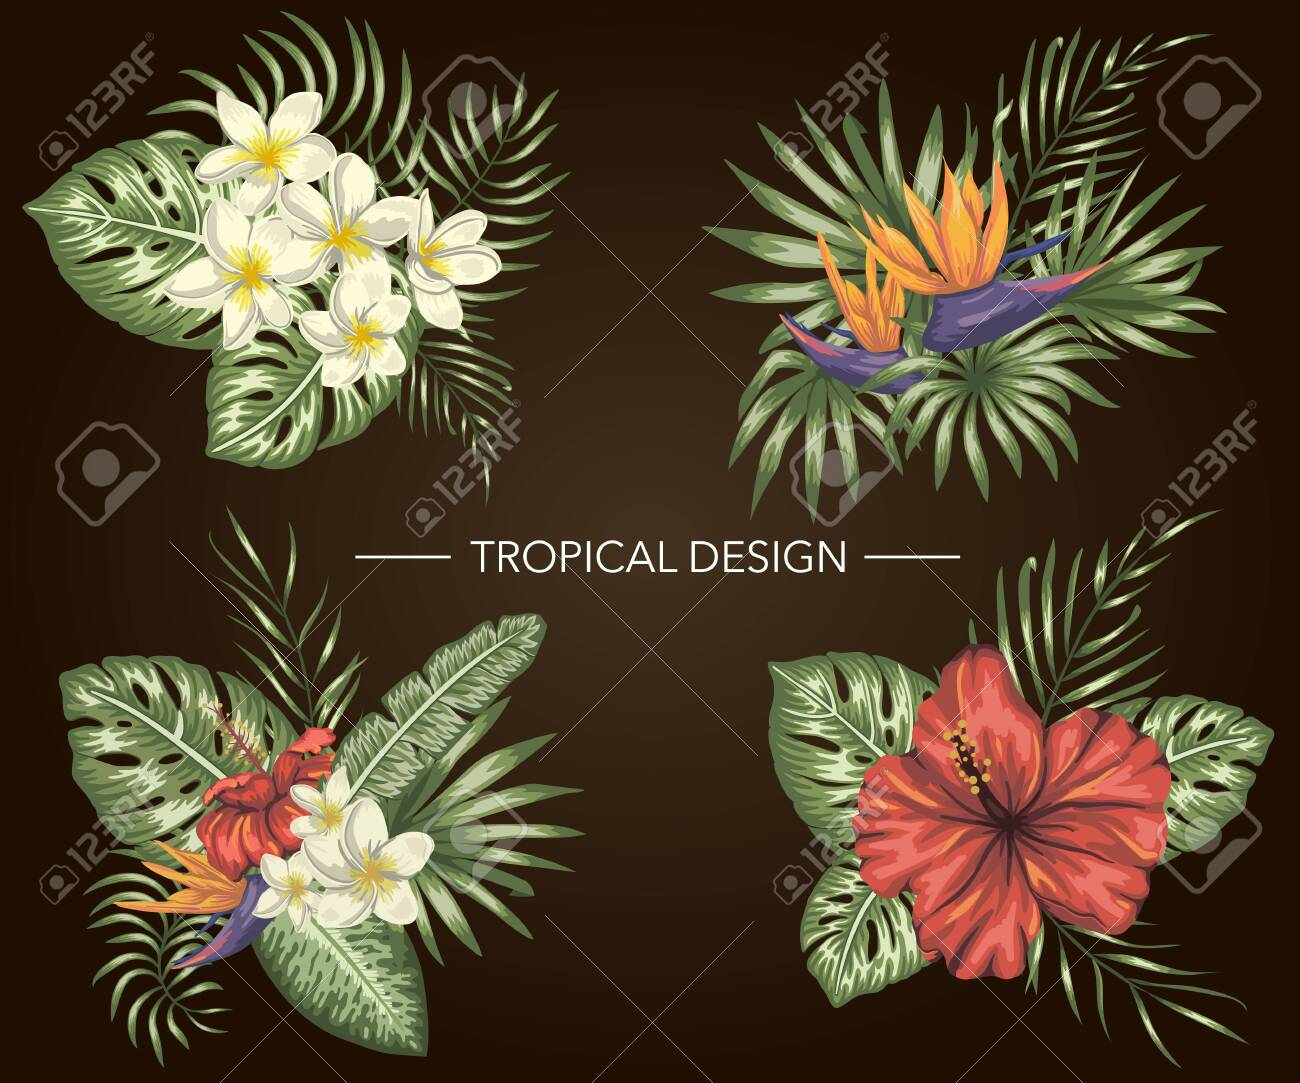 Vector set of tropical compositions with hibiscus, plumeria, strelitzia flowers, monstera and palm leaves on black background. Bright realistic watercolor style exotic design elements. - 123747564